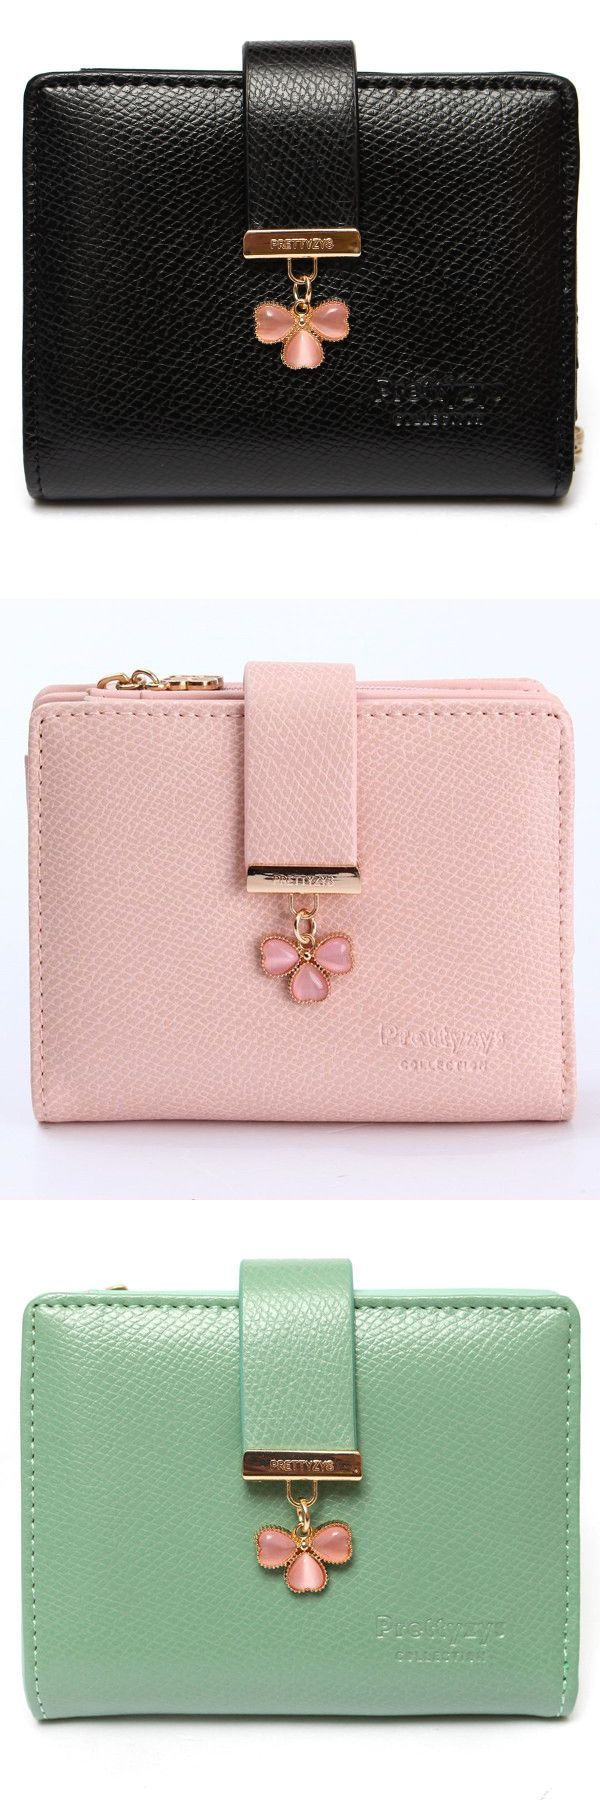 Wallets At Kohl 8217 S Candy Color Lucky Clover Diamond Women Short Purse Wallet